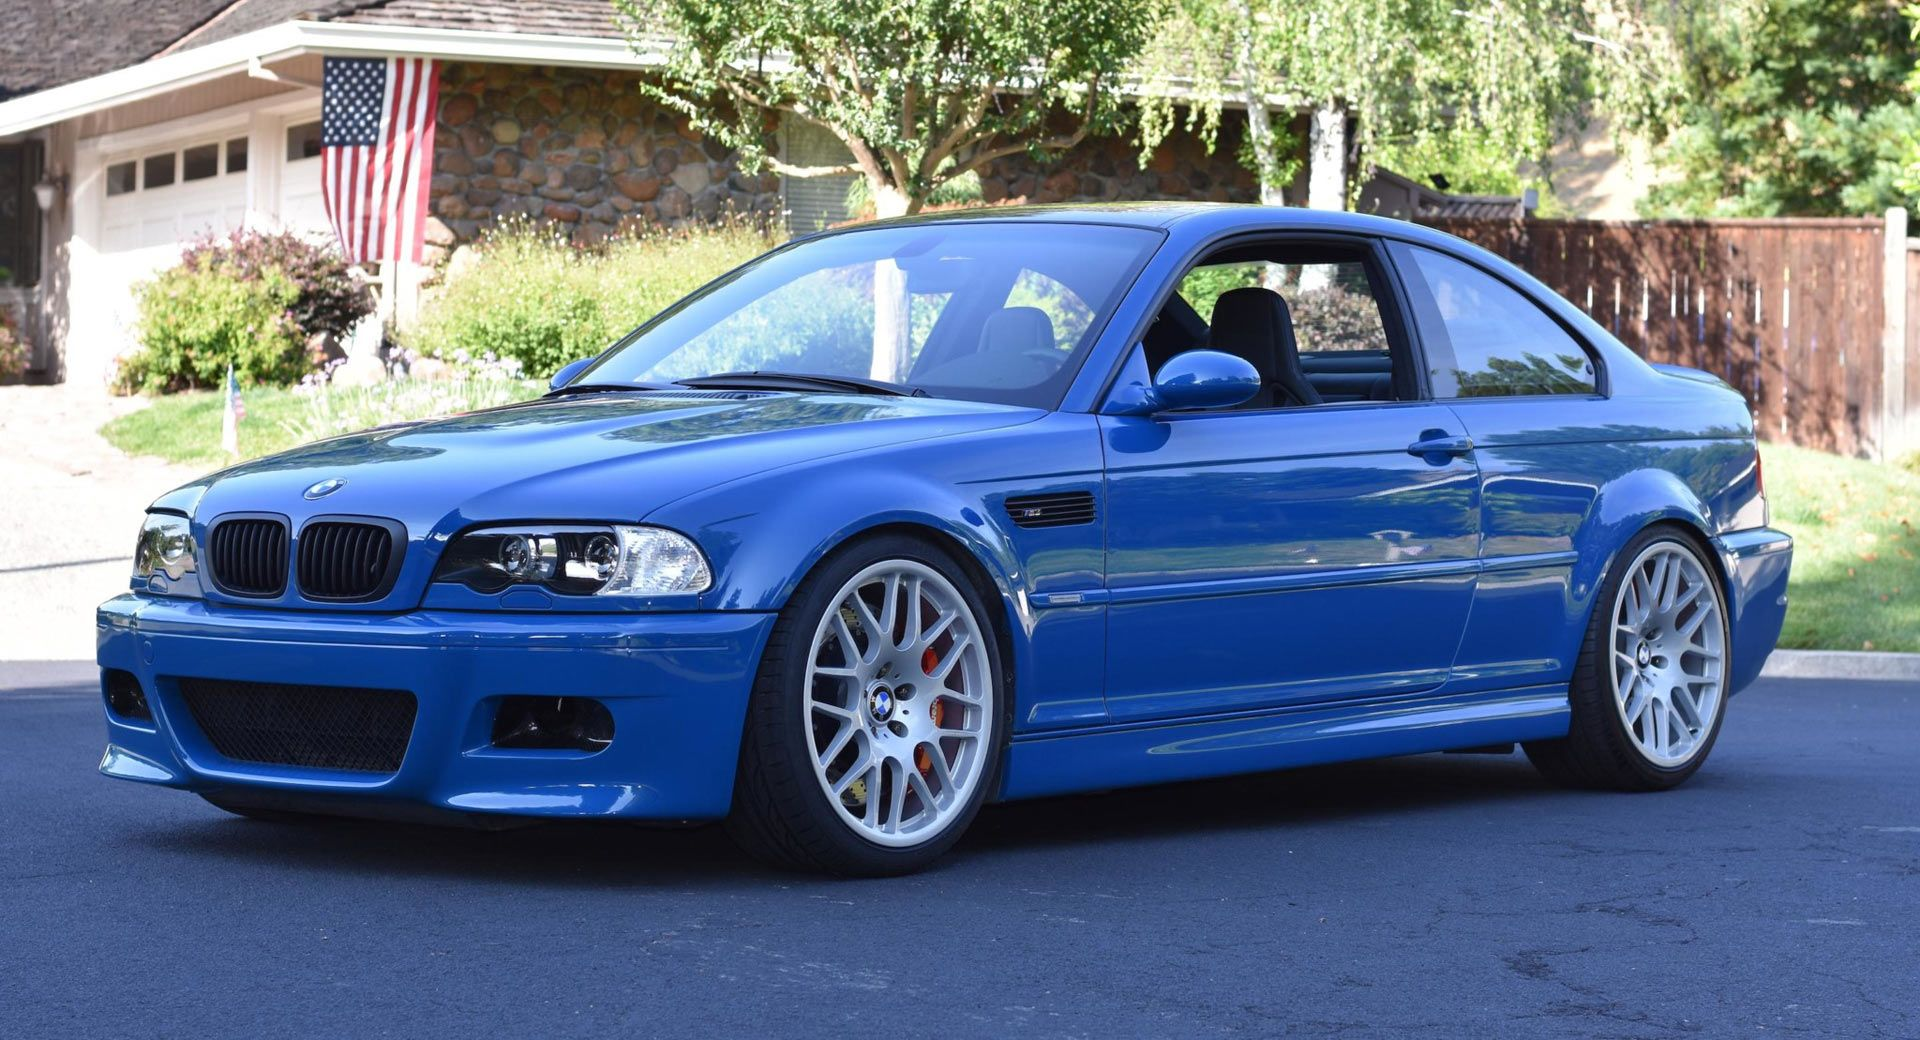 This 16k Mile Manual 2003 Bmw M3 E46 Is Stunning But It S Already Passed The 52k Mark Carscoops Bmw Bmw M3 2003 Bmw M3